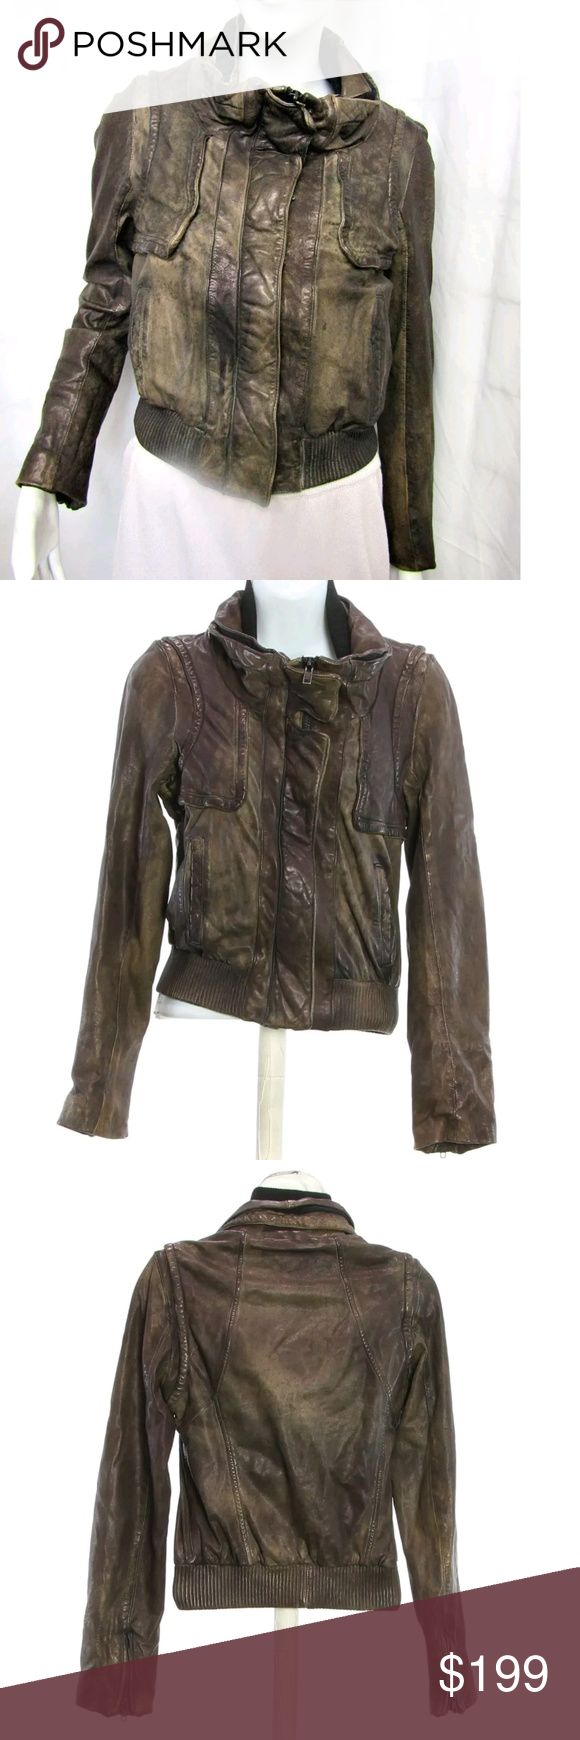 """🔥SALE 🔥All Saints Leather Bomber Moto Jacket Allsaints """" Shedu """" leather jacket.  Retailed approx $550 new, still looks new 😍  Has a unique washed / antique washed  bronzy brown finish with green undertones.  All photod are of the actual jacket for sale in  different lighting  Selling because I have a jacket very similar already.  The style I believe is called """" Pace """"  Size 4, feels smaller . Only flaw I can drum up is that the zipper works fine, just needs to be pushed in firmly before…"""